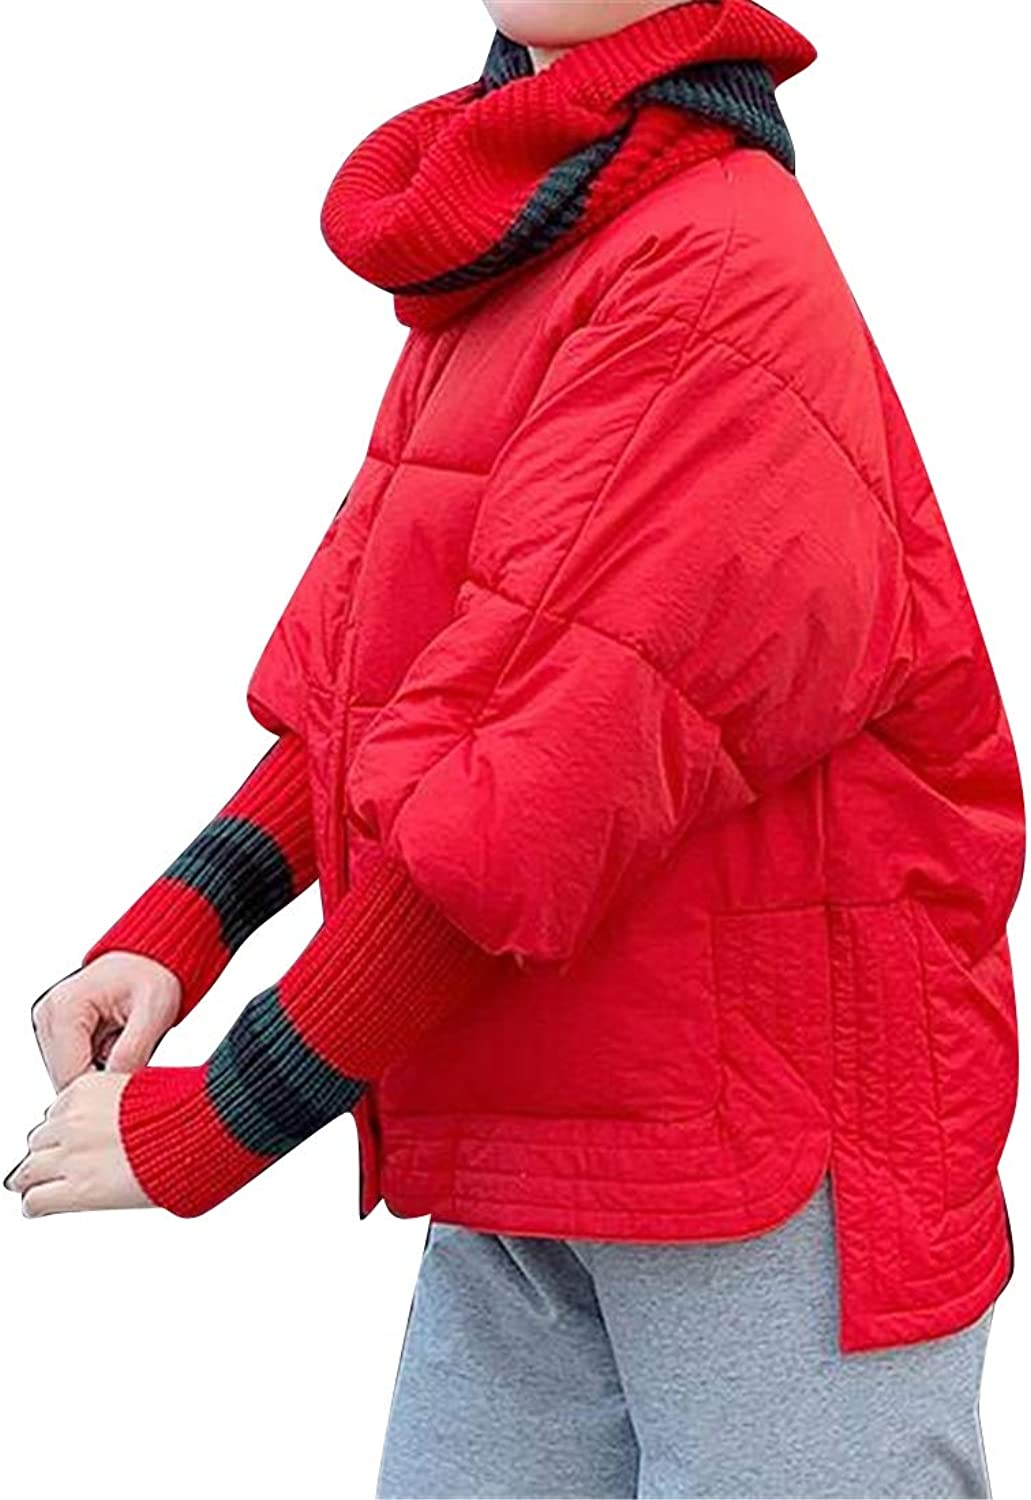 SHOWNO Womens Knitting Loose Fit Irregular Thermal Winter Quilted Jacket Parka Coat Outerwear